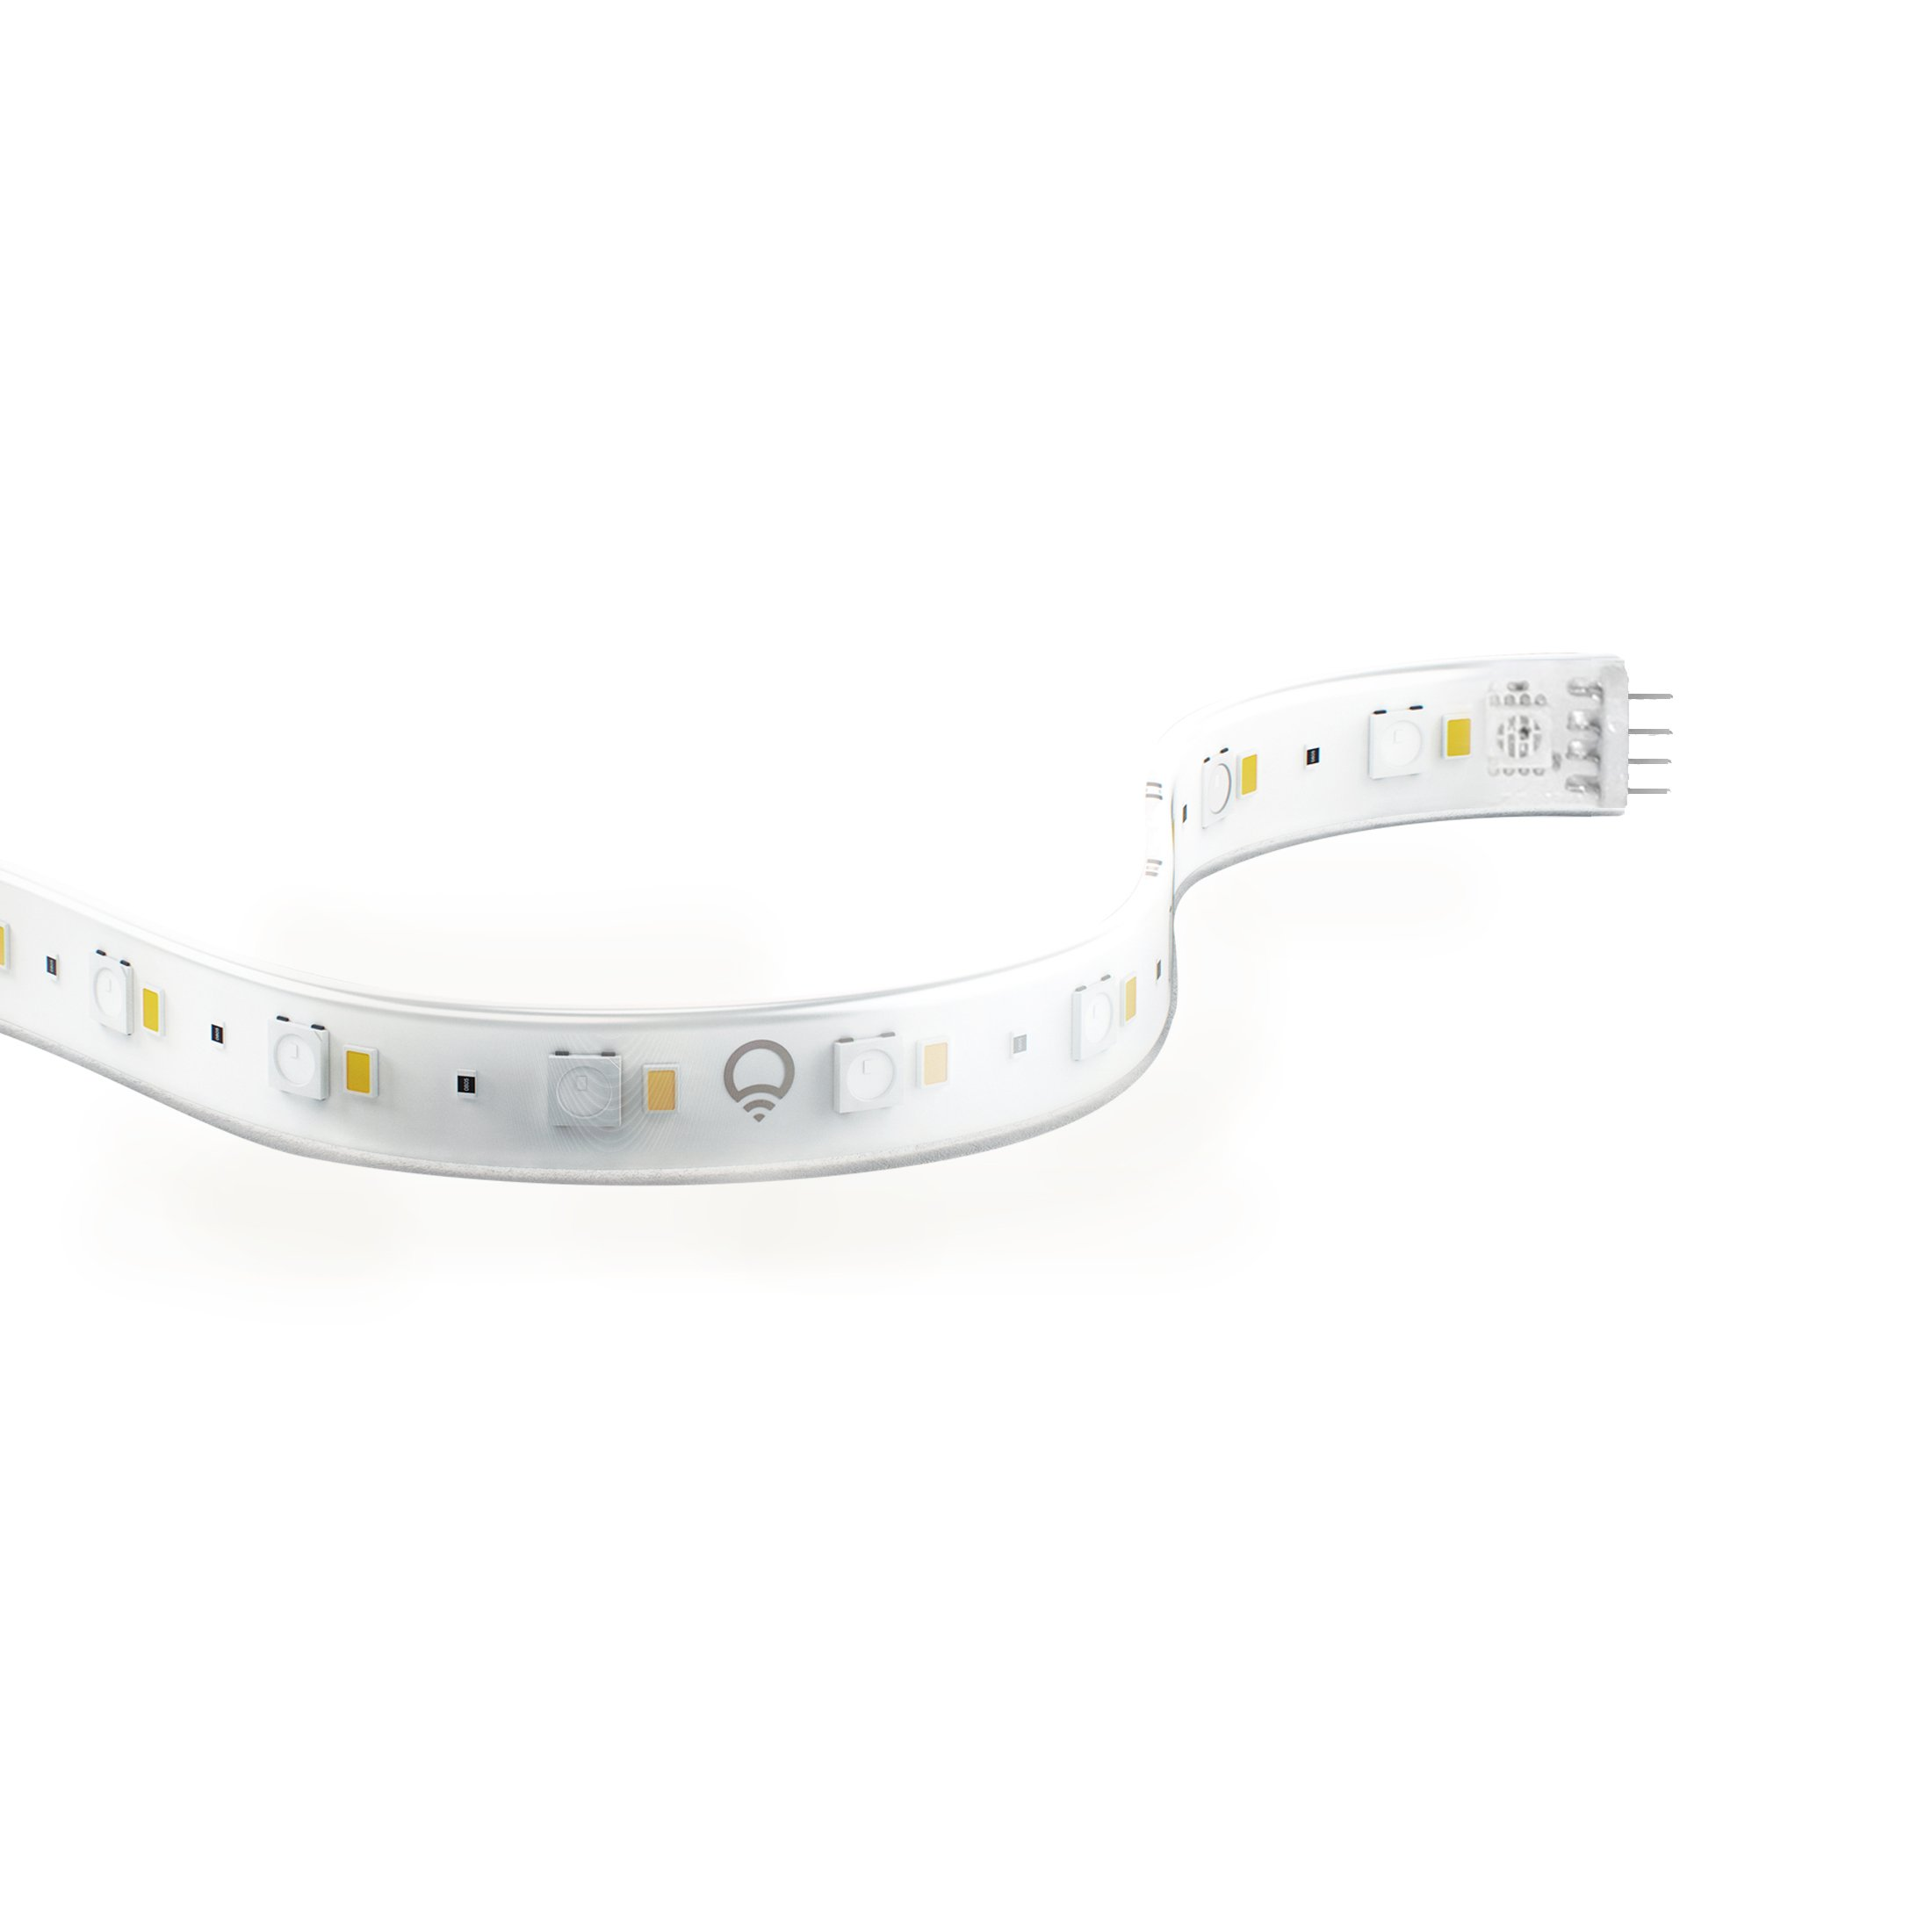 LIFX Z (Starter Kit) Wi-Fi Smart LED Light Strip (Base + 2 meters of strip), Adjustable, Multicolor, Dimmable, No Hub Required, Works with Alexa, Apple HomeKit and the Google Assistant (NEW VERSION)